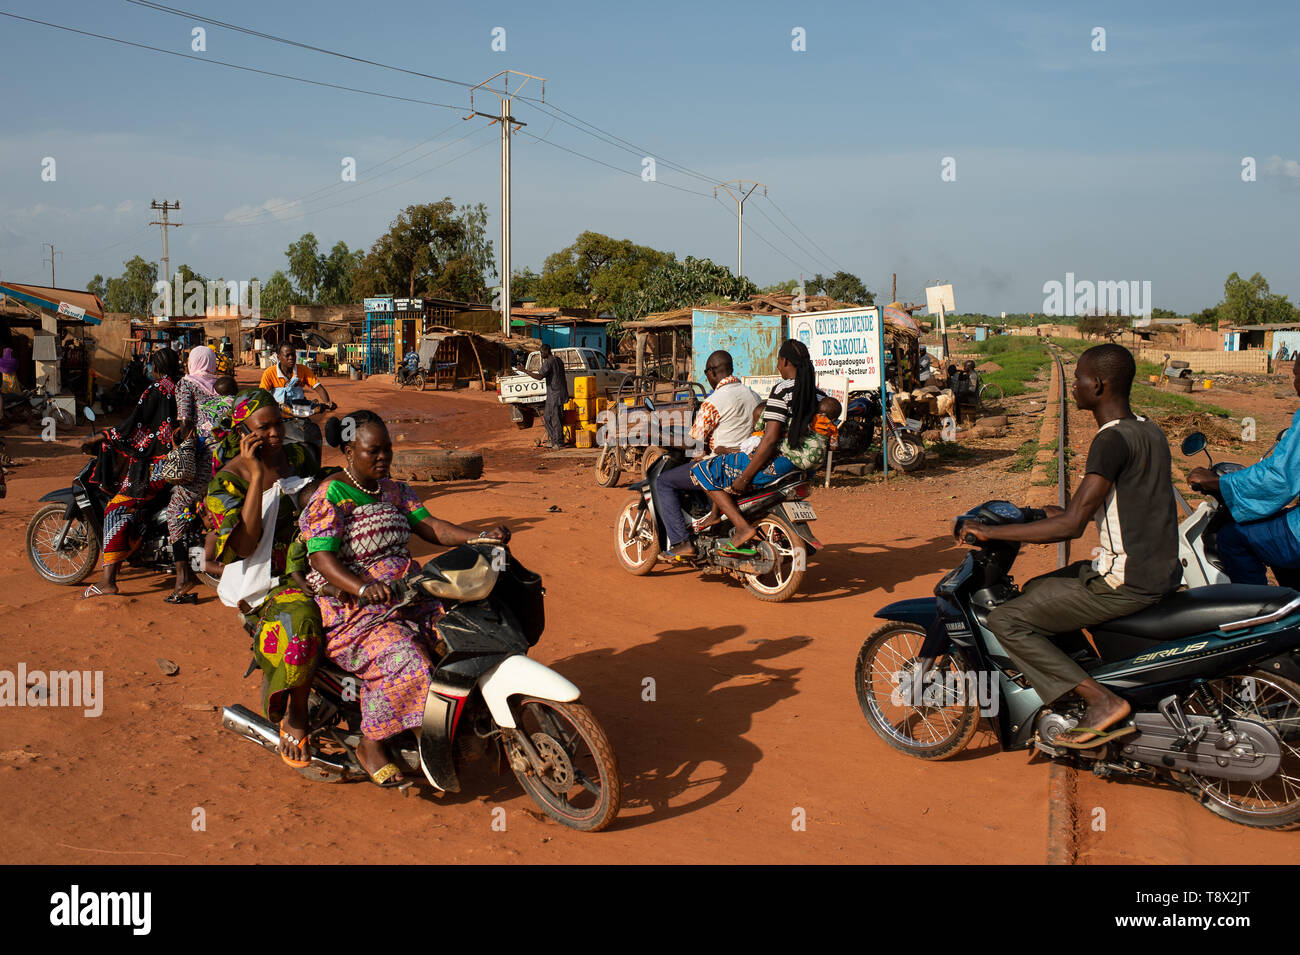 People In The Streets Of Ouagadougou Capital Of Burkina Faso One Of The Most Poor Country Of The Africa Stock Photo Alamy